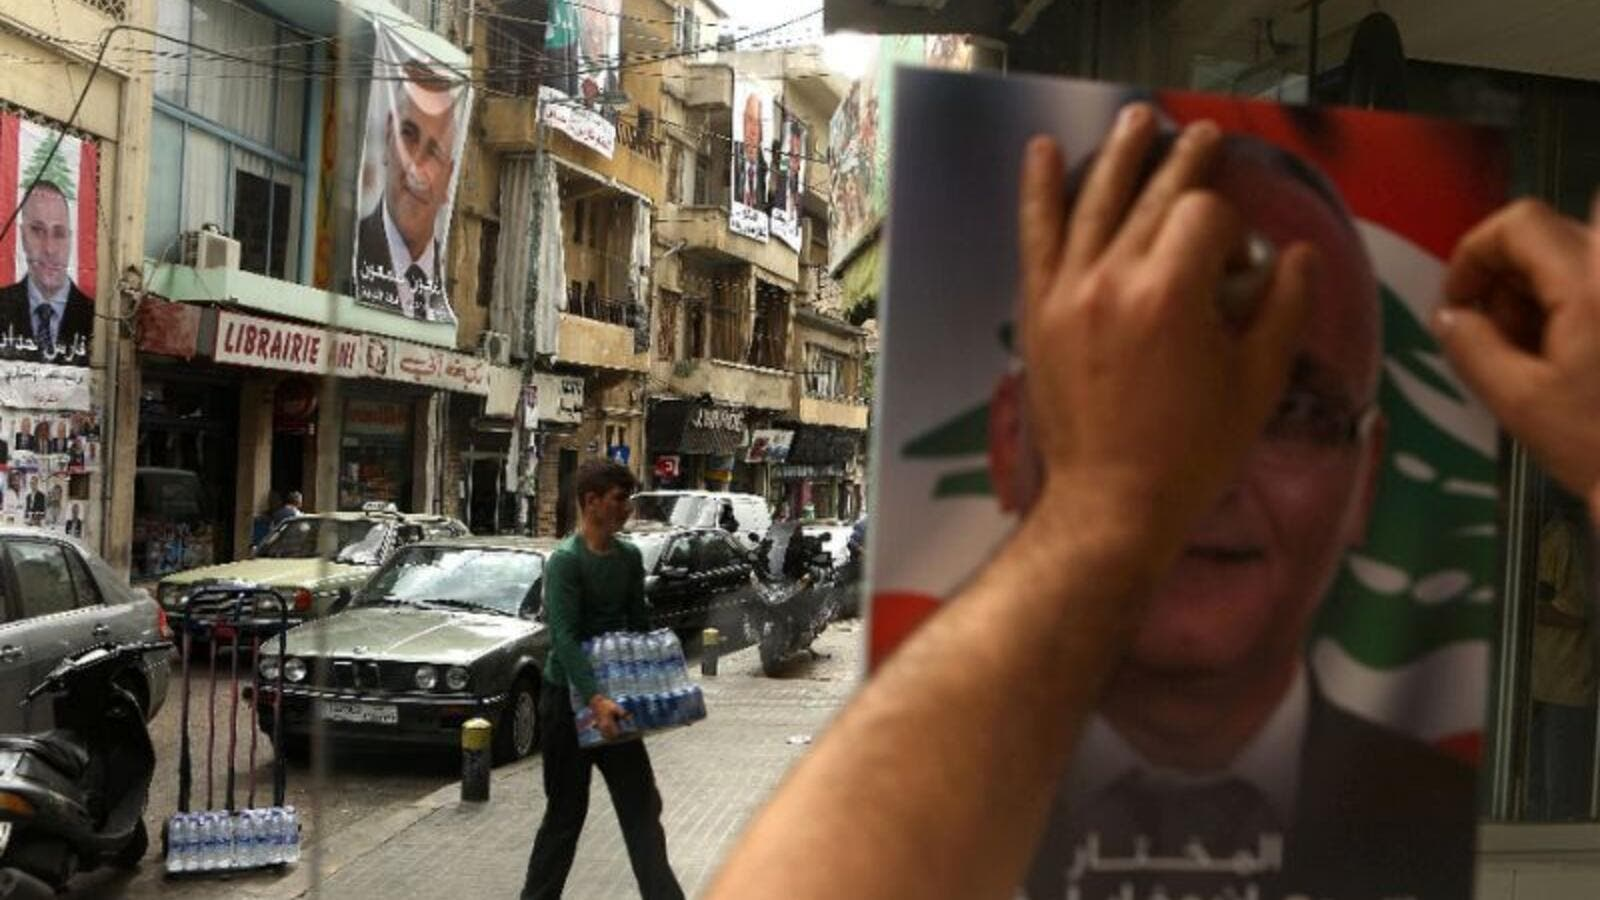 A Lebanese man puts up a poster of a candidate in the Beirut municipal elections. (AFP/File)